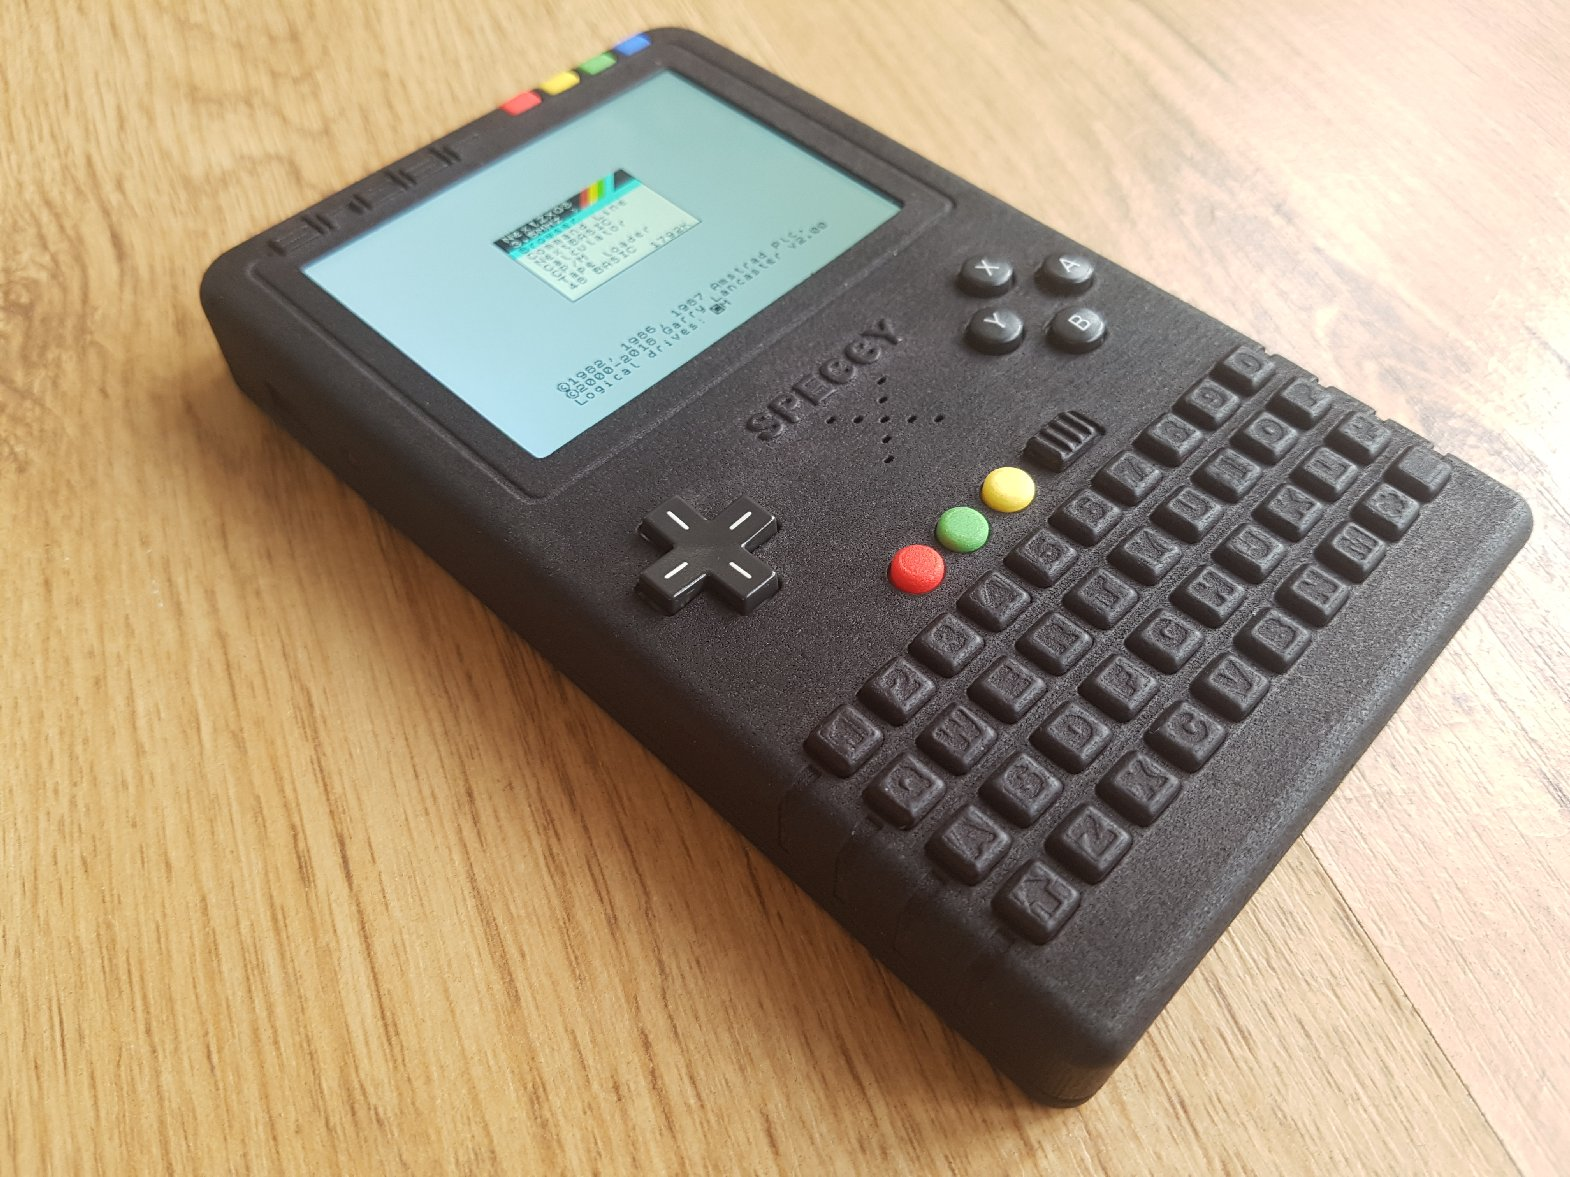 The finished Handheld 3.5